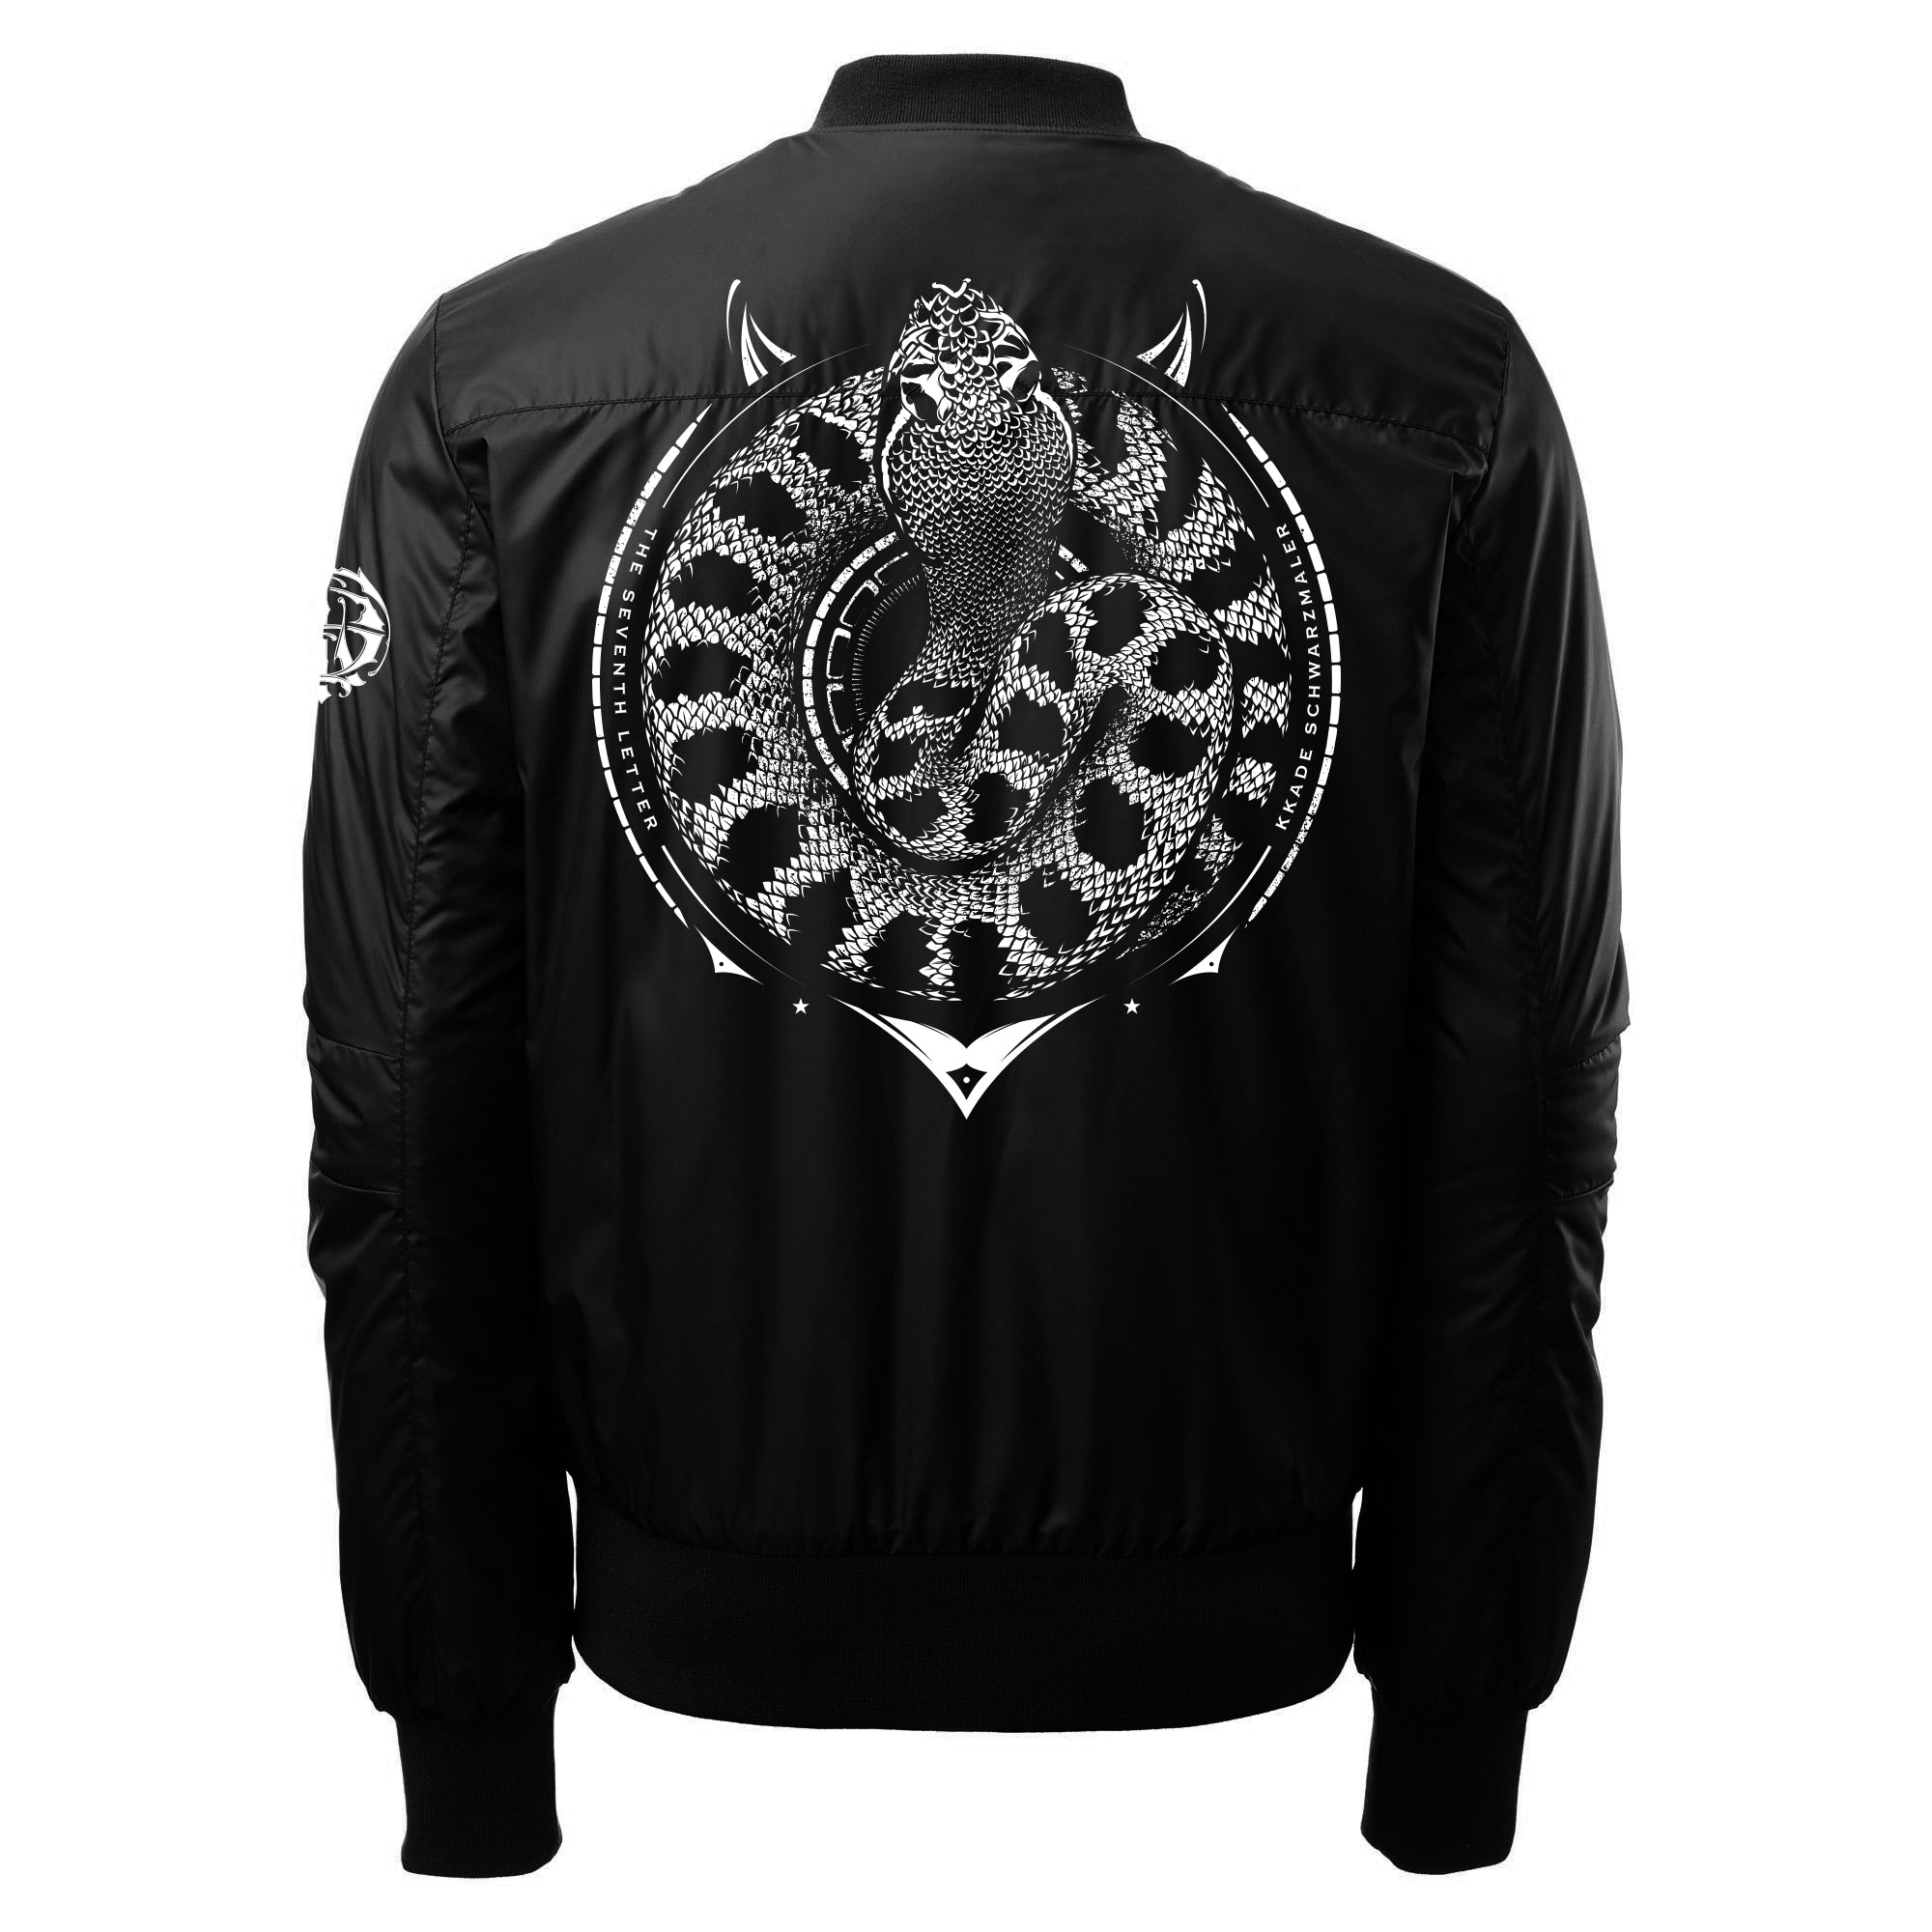 KKADE X TSL FEAR NO EVIL BOMBER JACKET (BLACK)